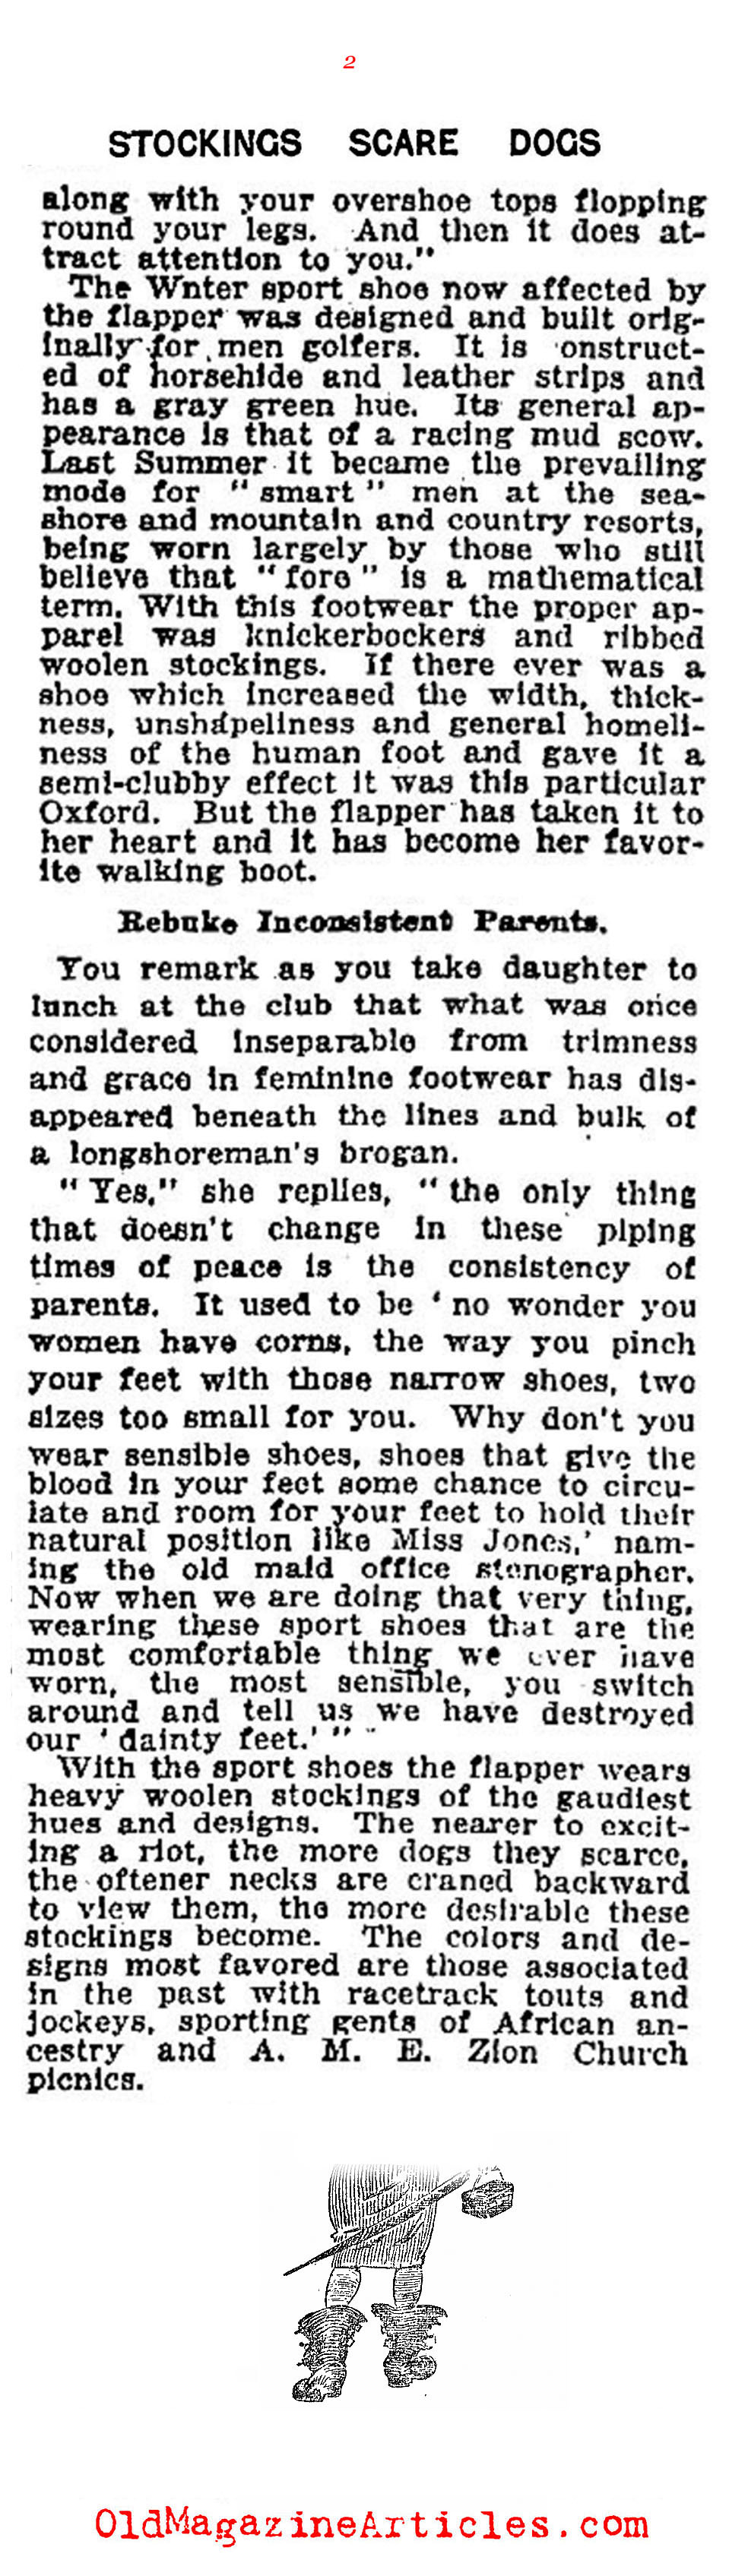 The Winter Look for Flappers (New York Times, 1922)